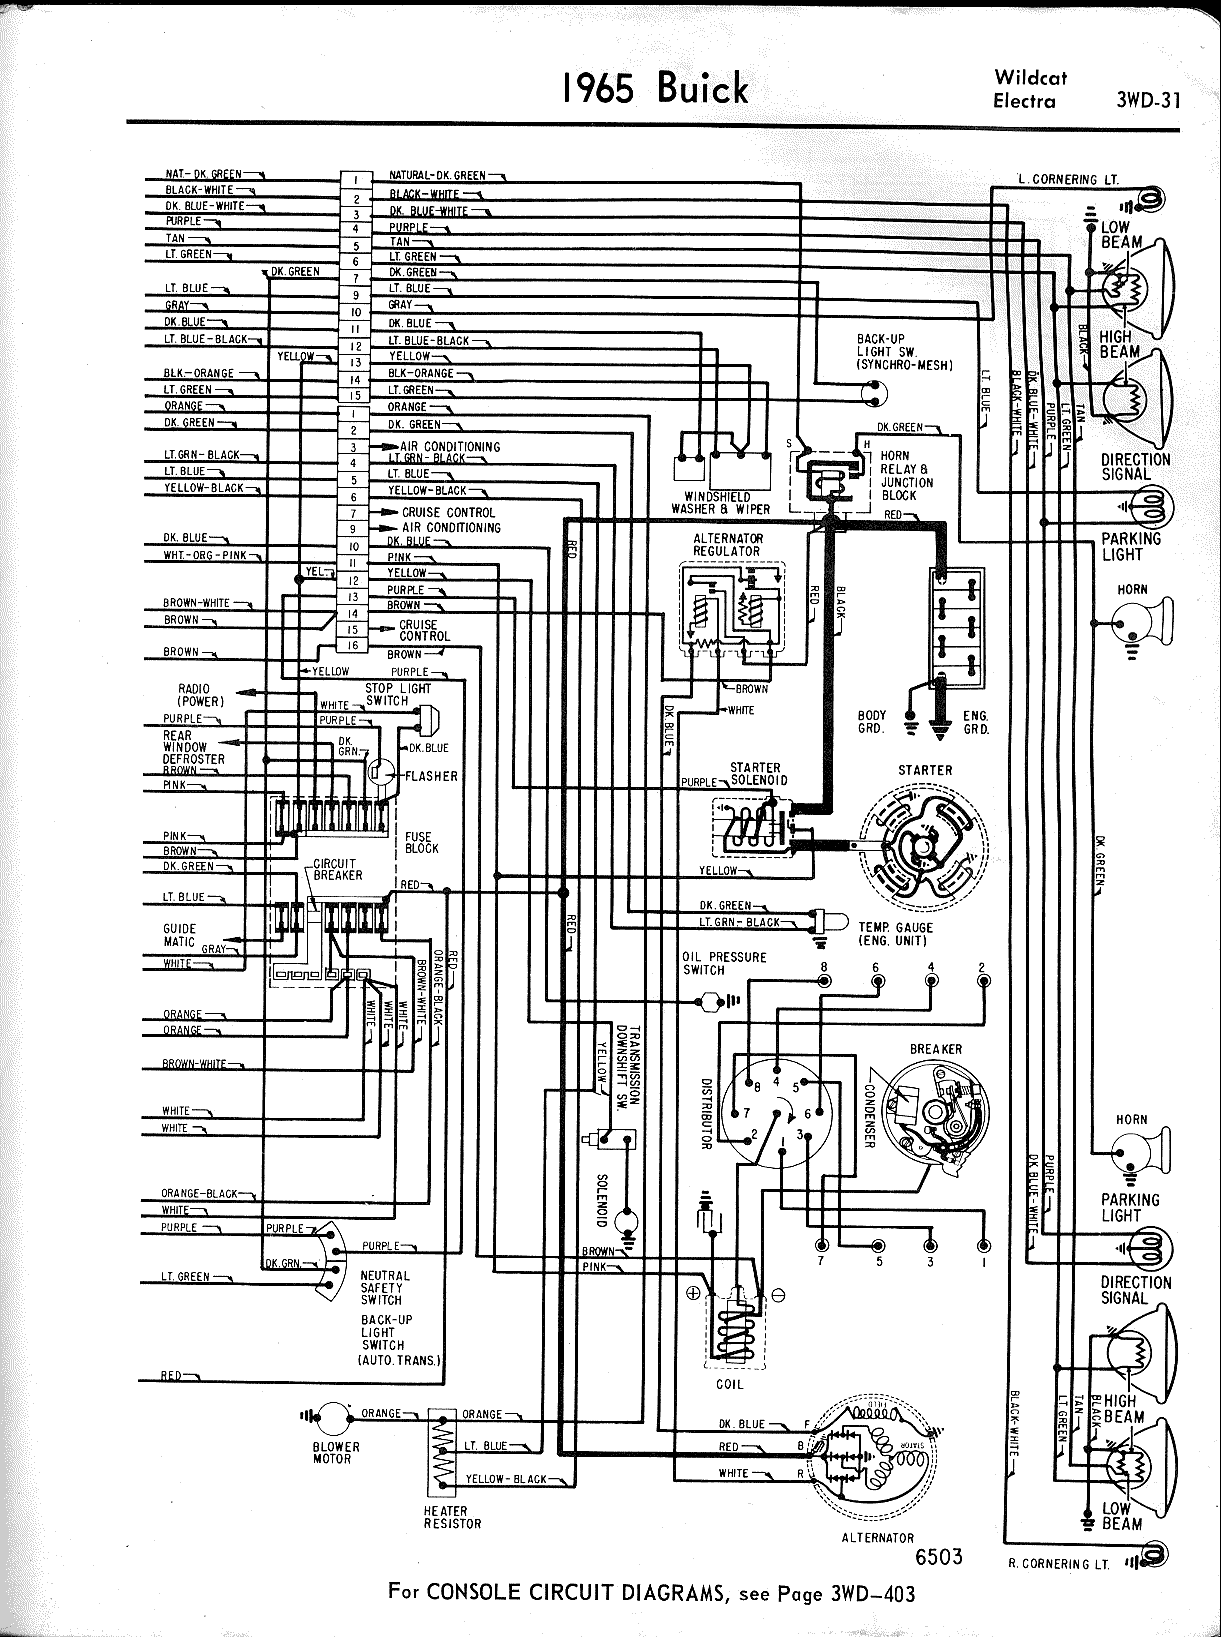 Buick Lucerne Headlight Wiring Harness Library Regal Diagram Also 2000 Lesabre Abs Diagrams 1957 1965 99 Electra